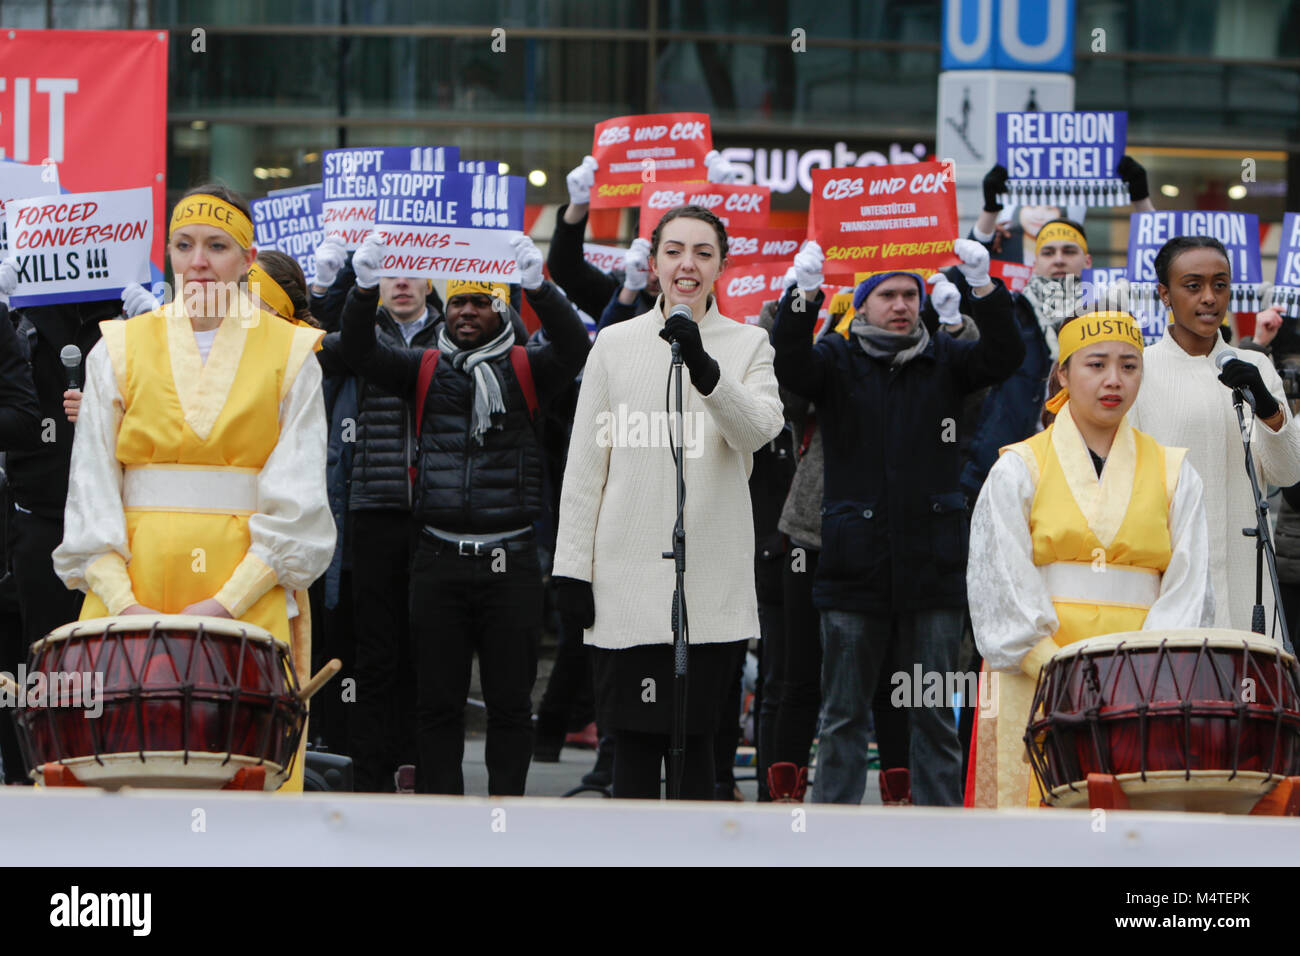 Frankfurt, Germany. 17th Feb, 2018. Sympathisers of the Human Rights Association for Forced Conversion sing about Stock Photo